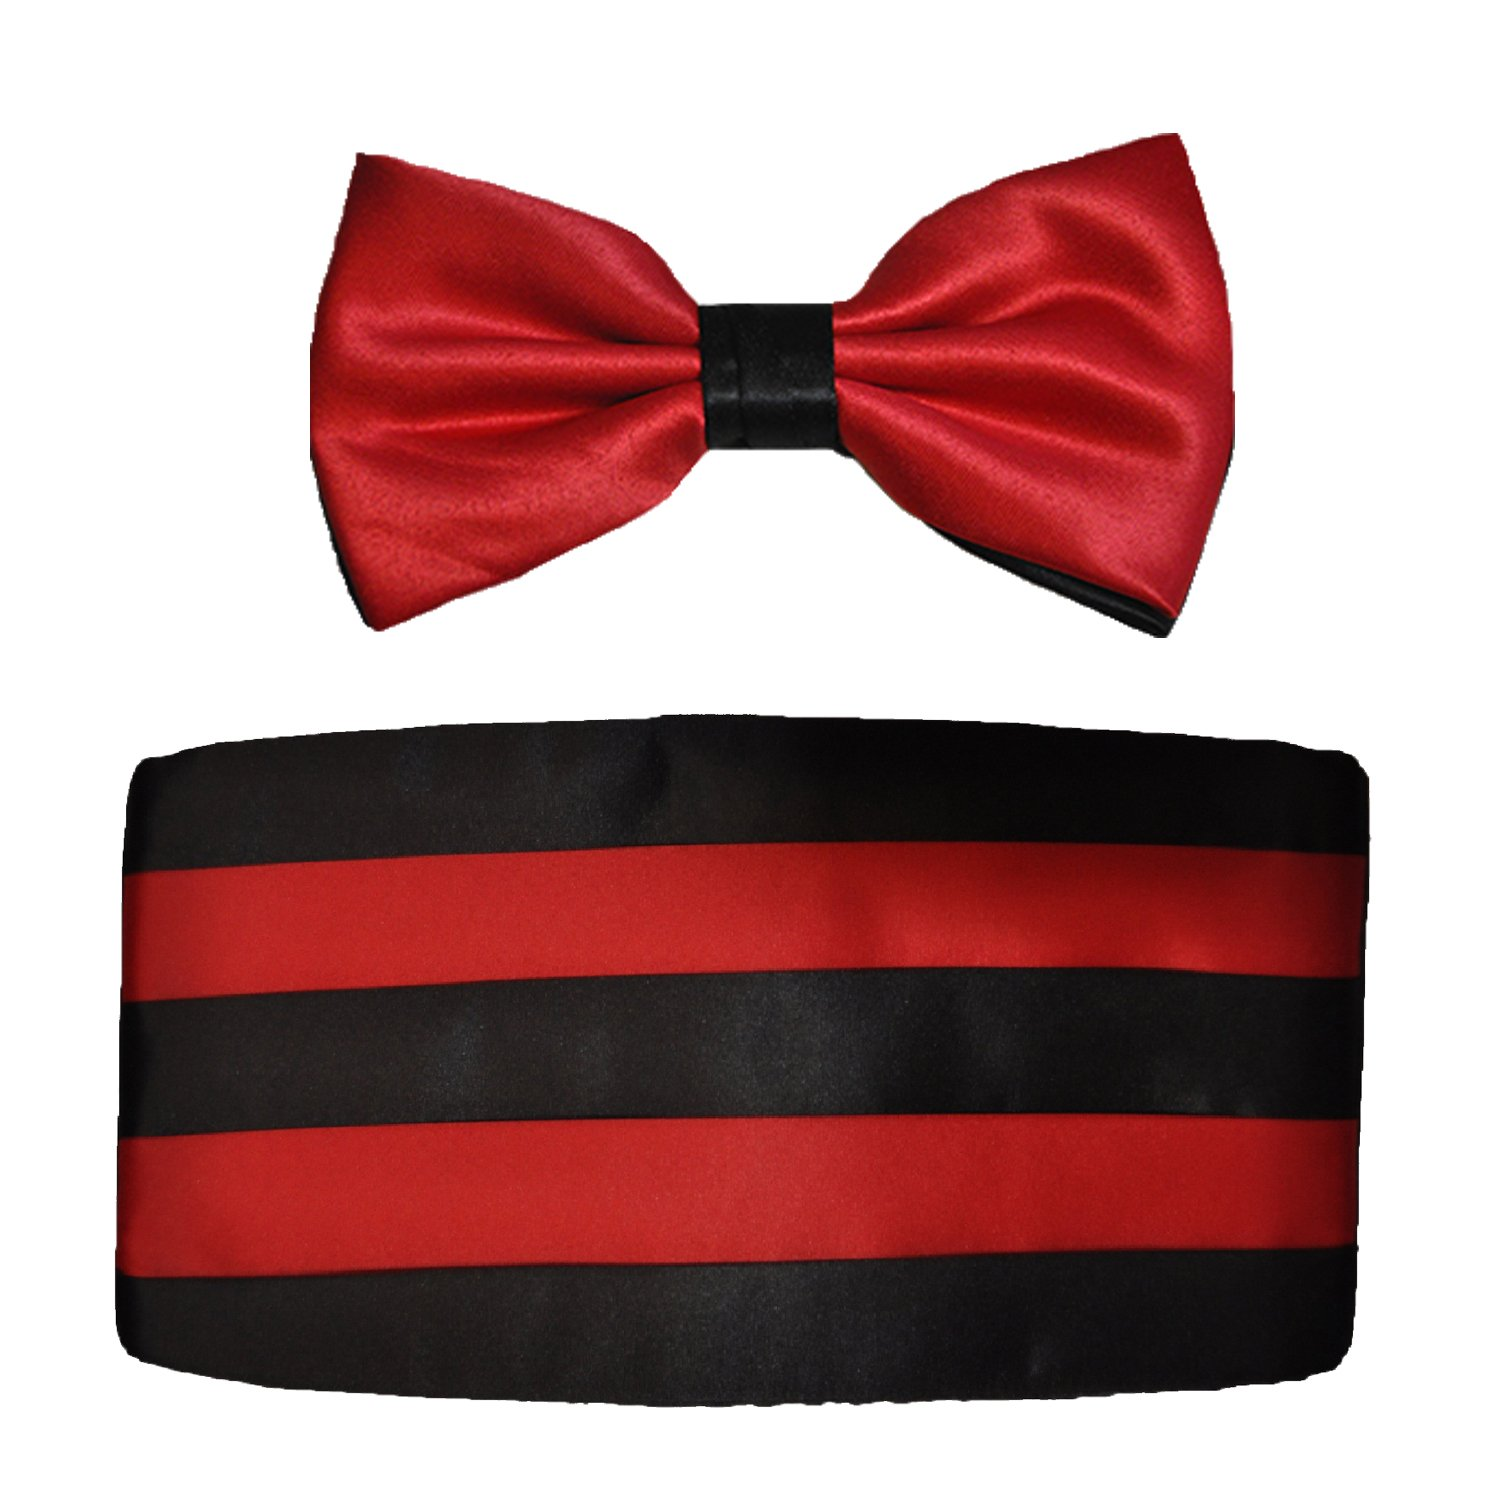 Mens Black and Red Satin Cummerbund & Bow Tie Set